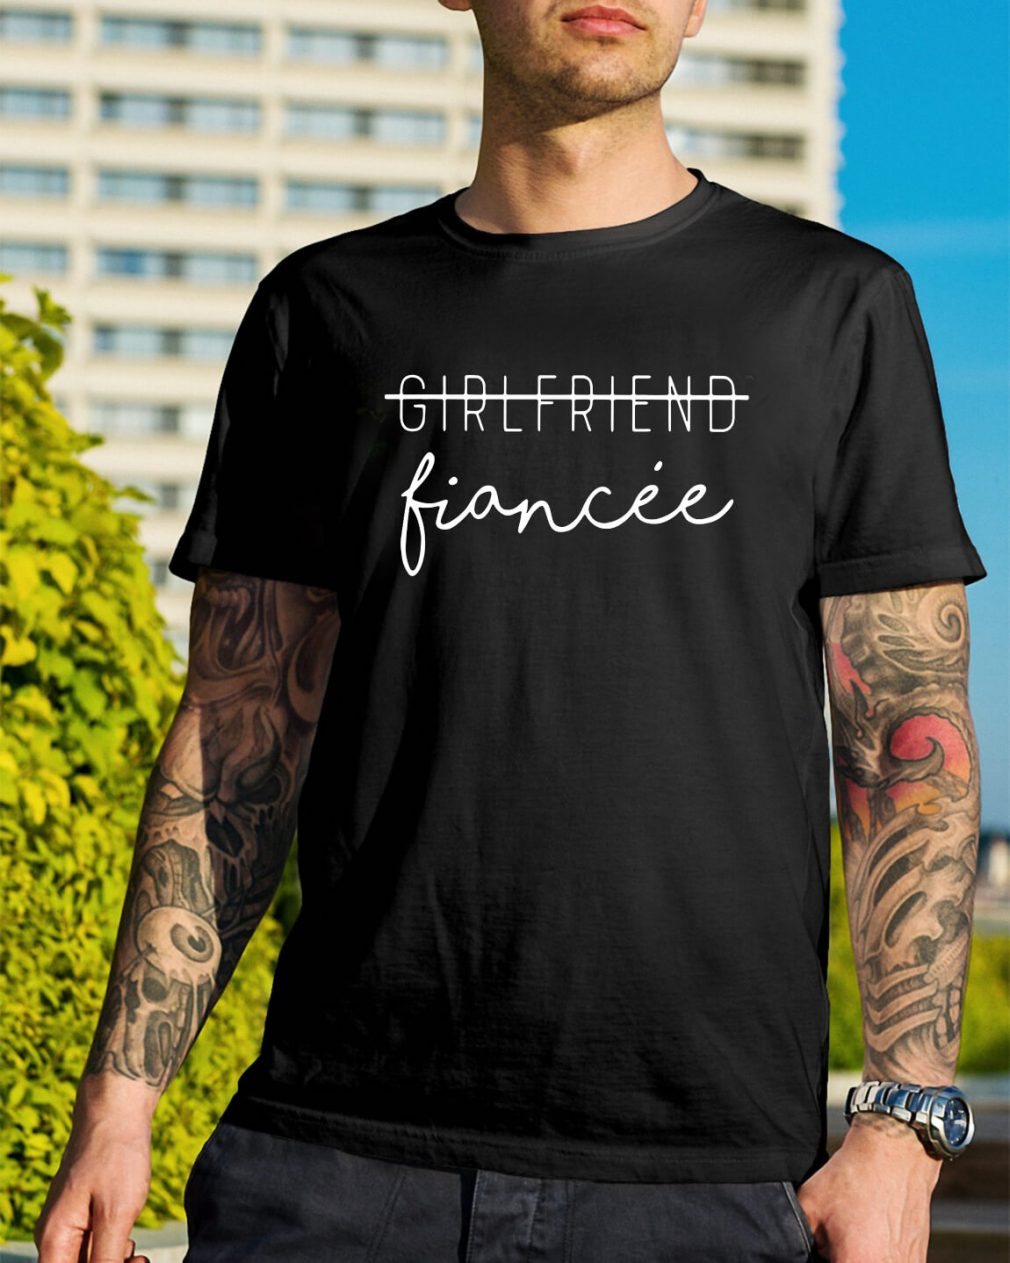 Girlfriend Fiancee shirt